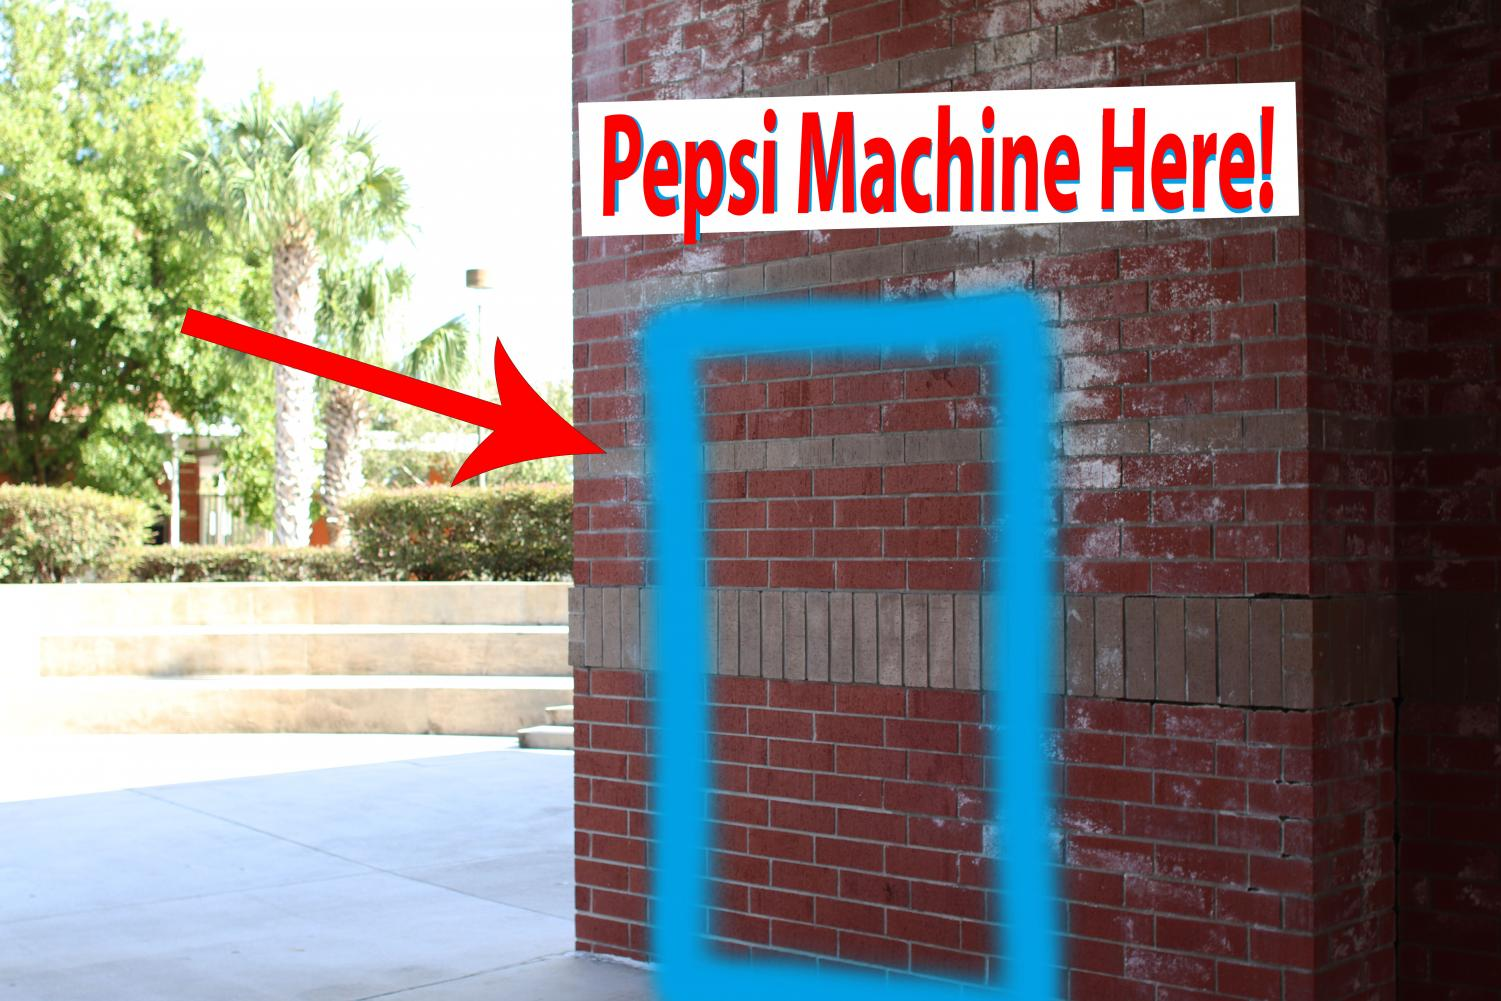 New Pepsi machines are coming to campus this school year.